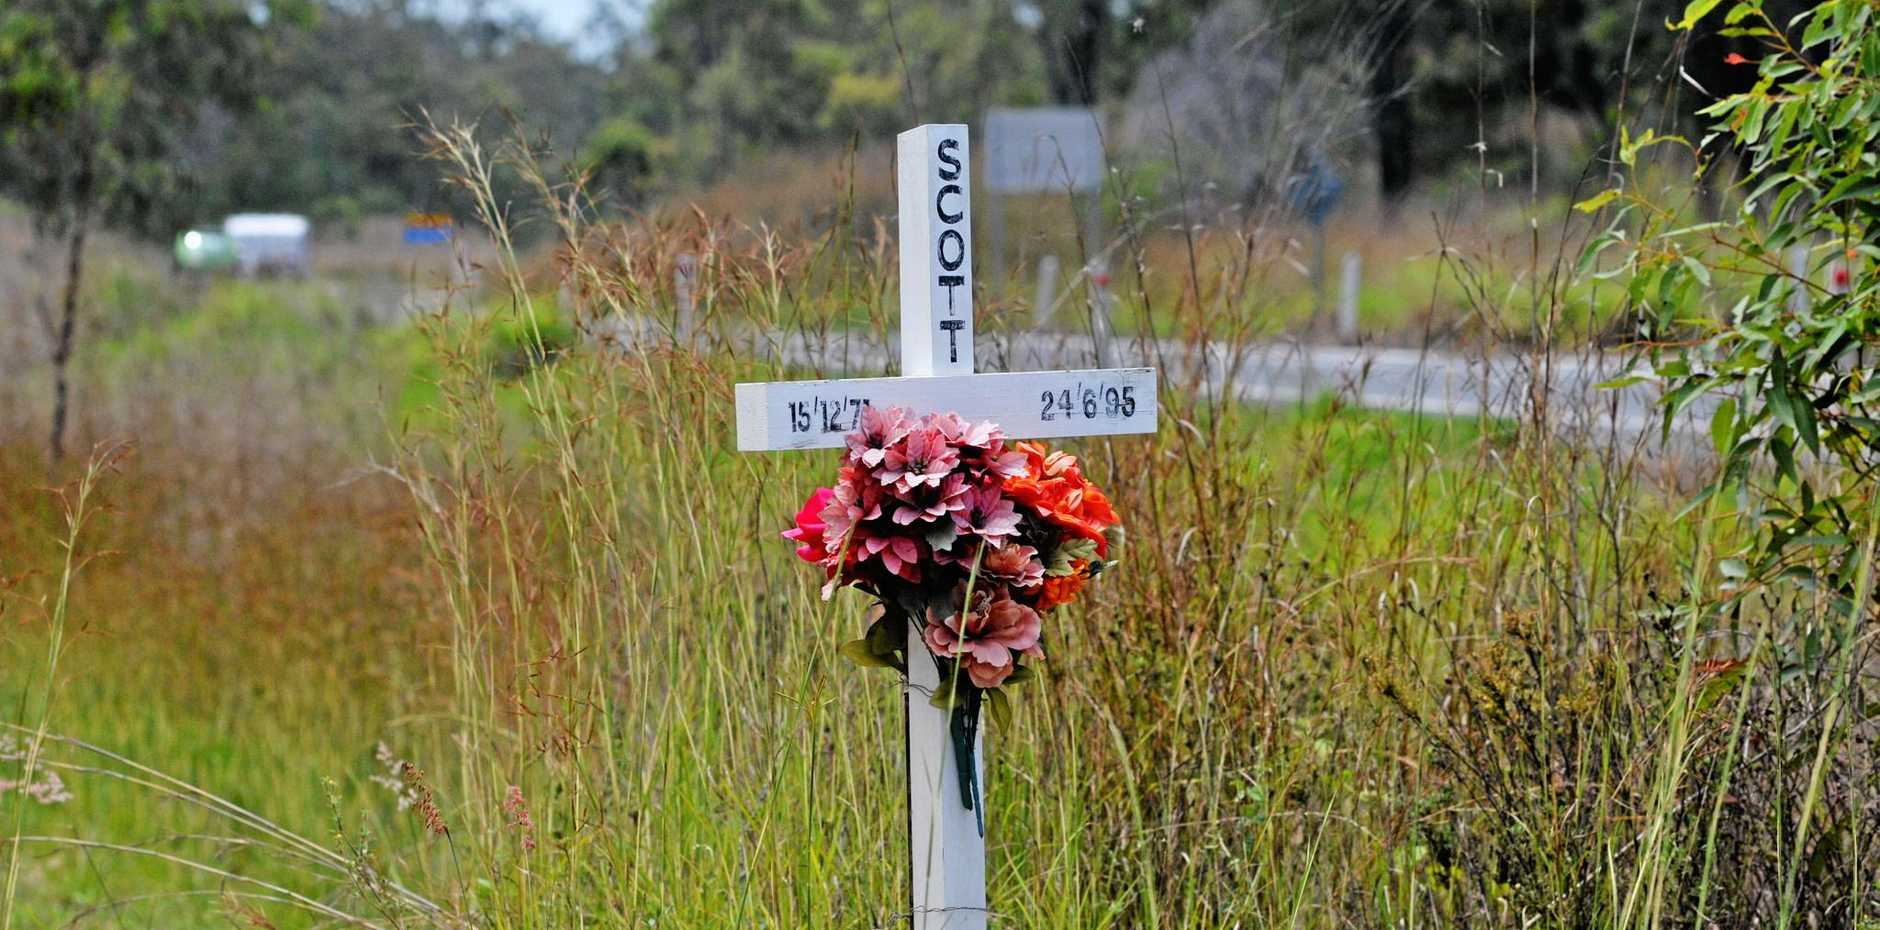 The start of the winter school holidays has been marked by a weekend of horror after five people were killed on Queensland roads.